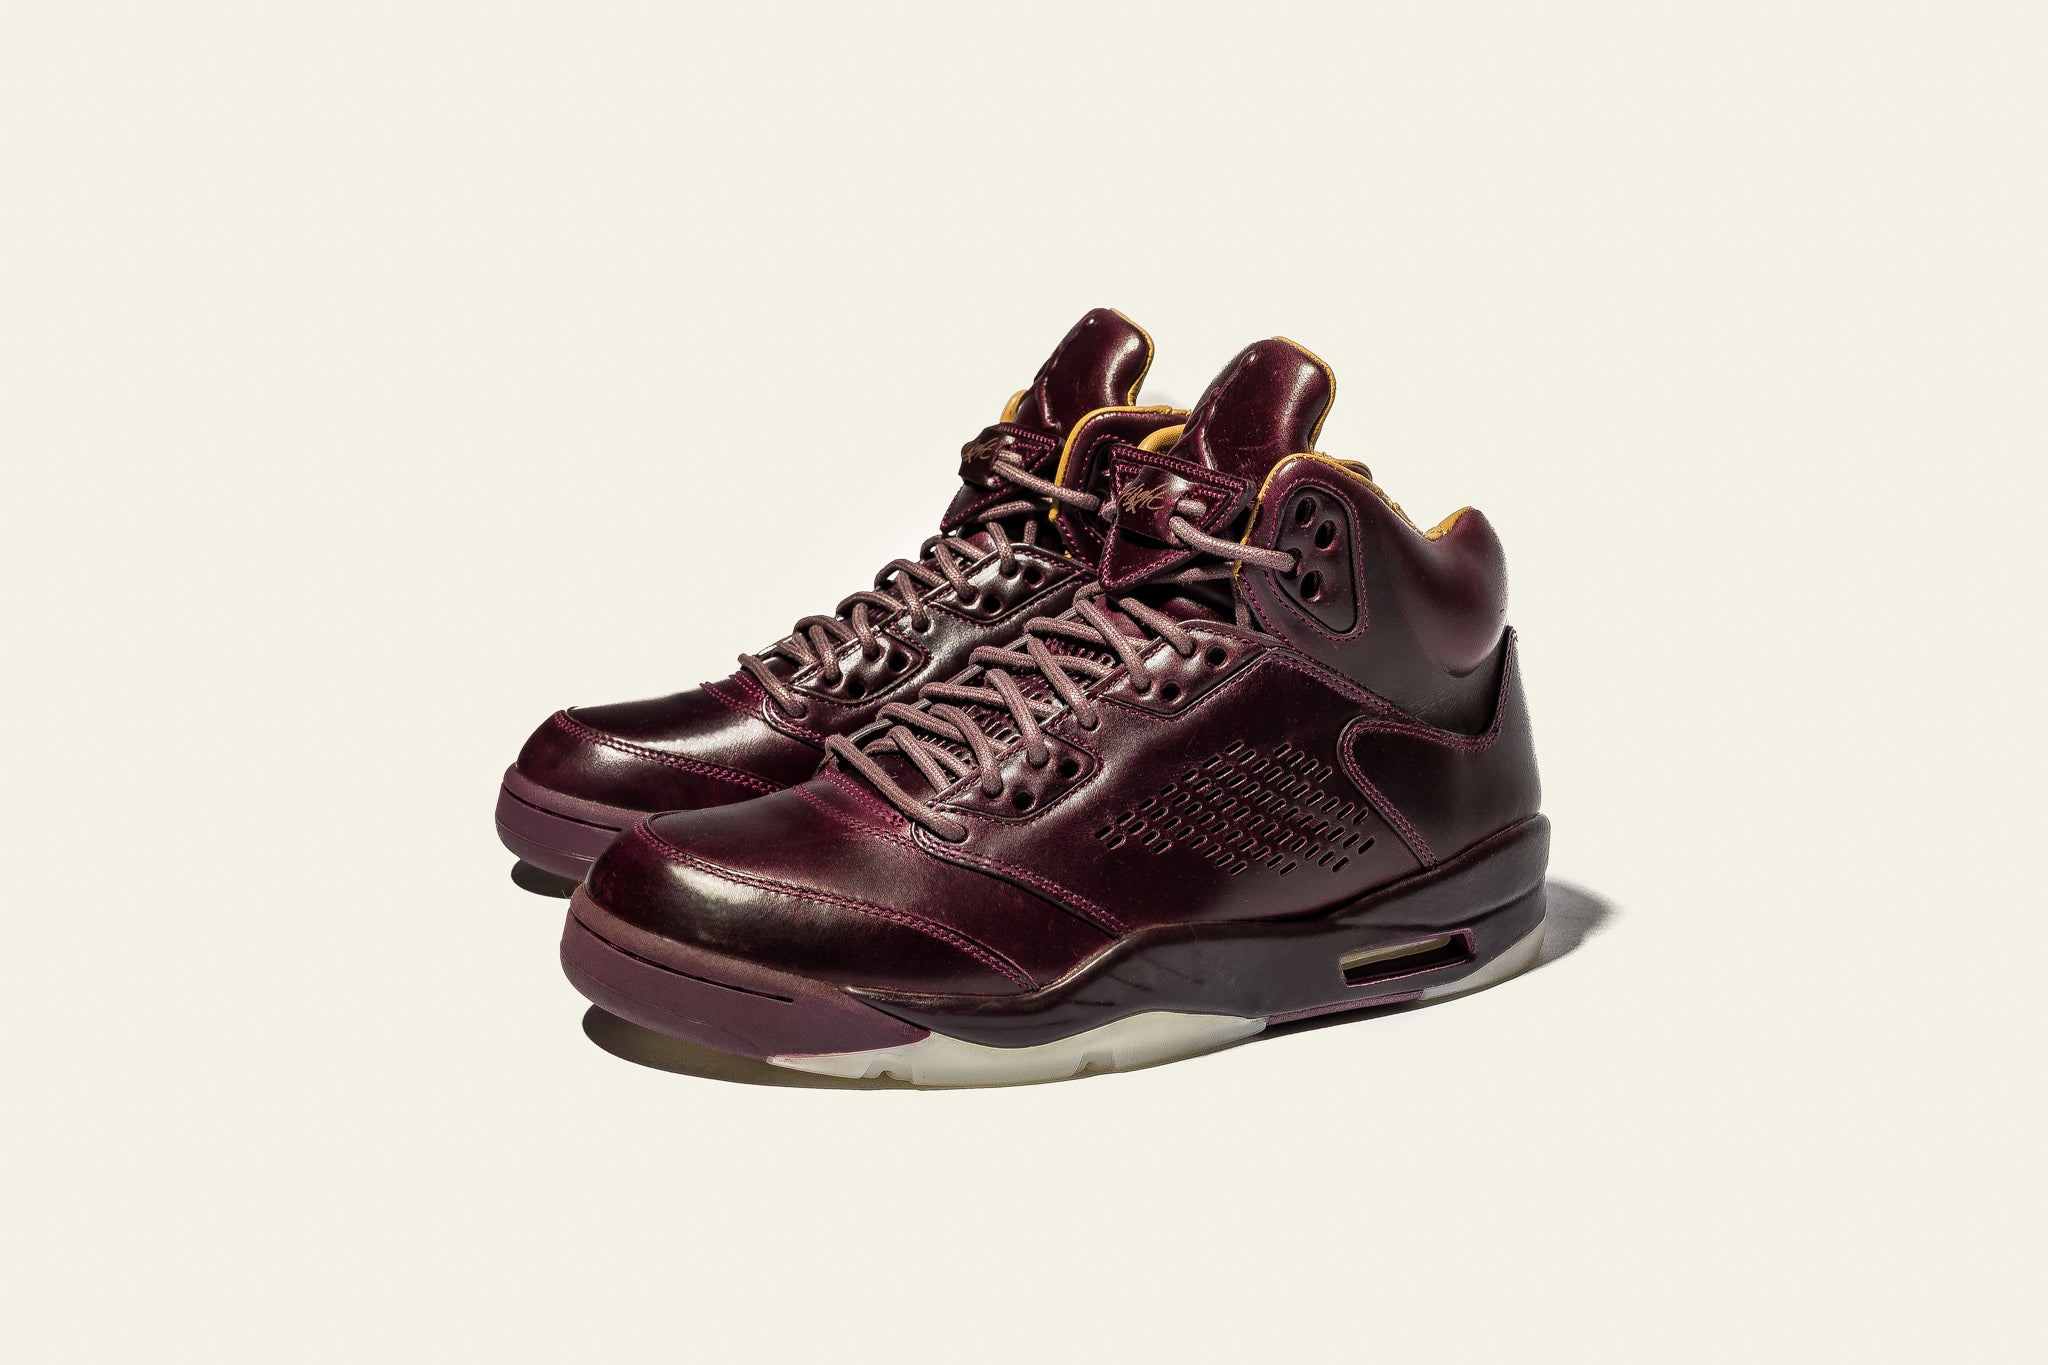 outlet store 5f070 bbc34 good home air jordan 5 ls burgundy a48bc 26911  wholesale the air jordan 5  prm bordeaux pulls out all the stops when it comes to